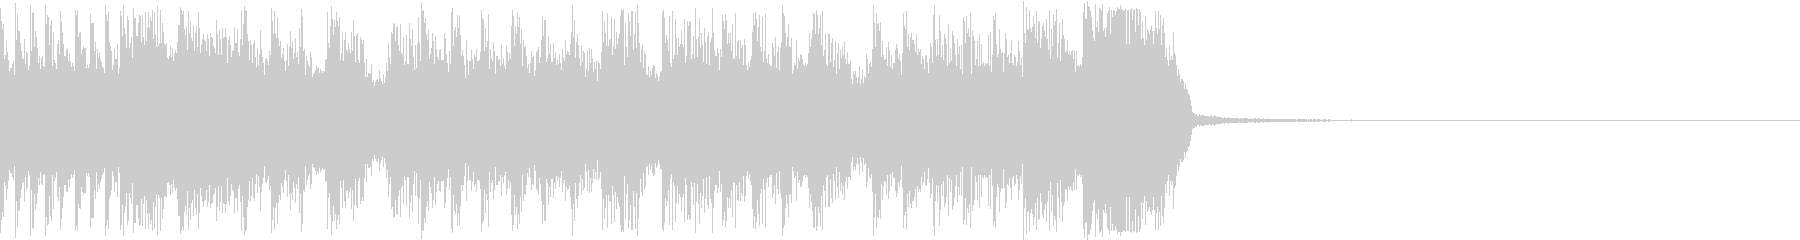 Rock jingle 1's unreproduced waveform